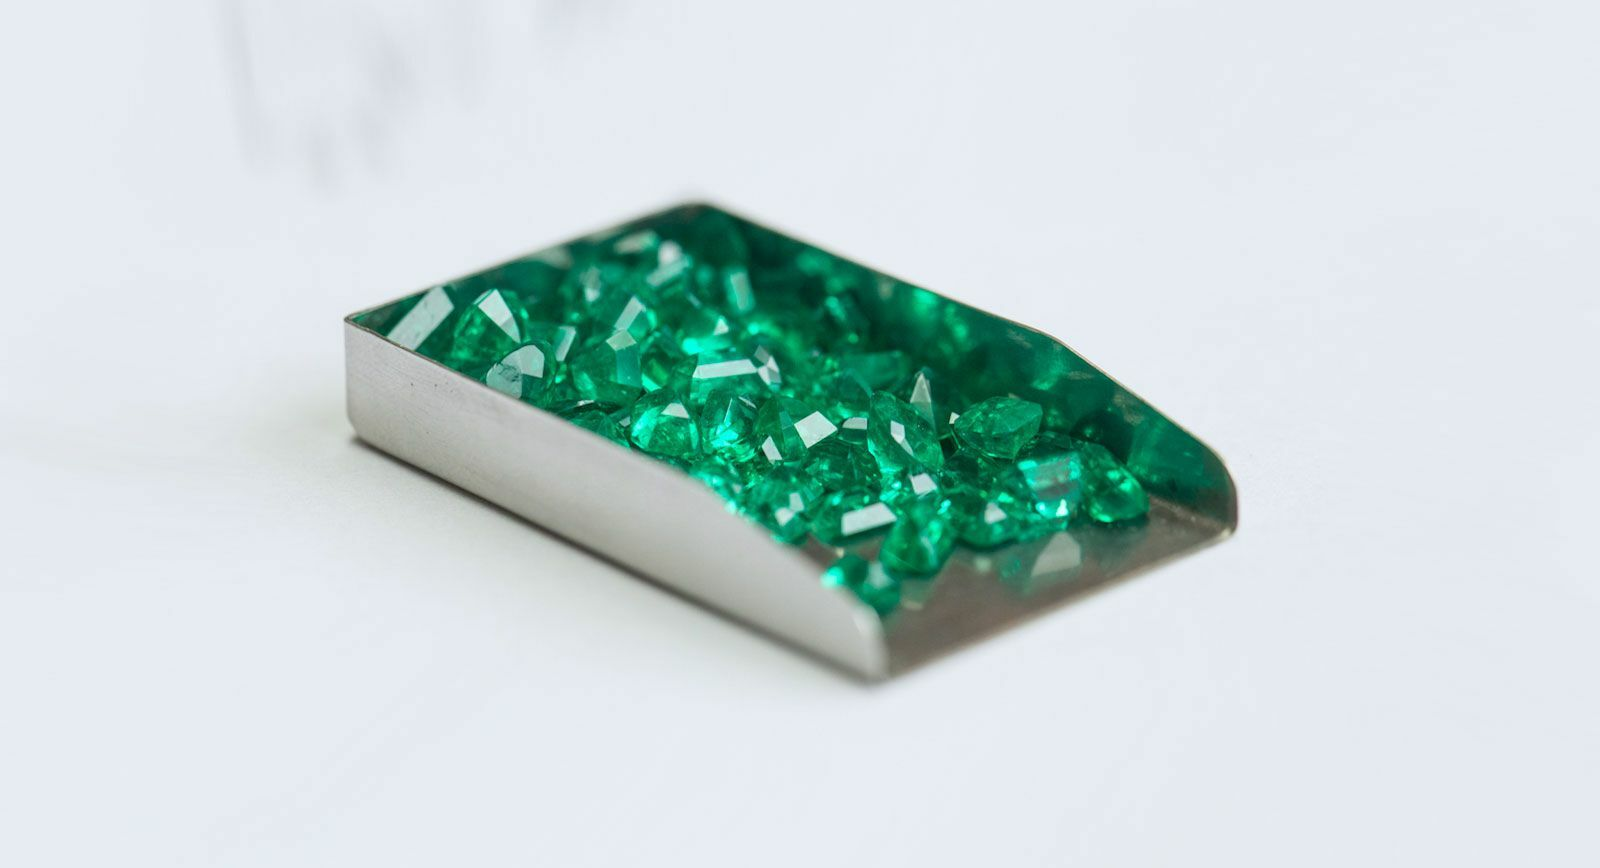 Behind the Scenes of the Emerald Mining Business